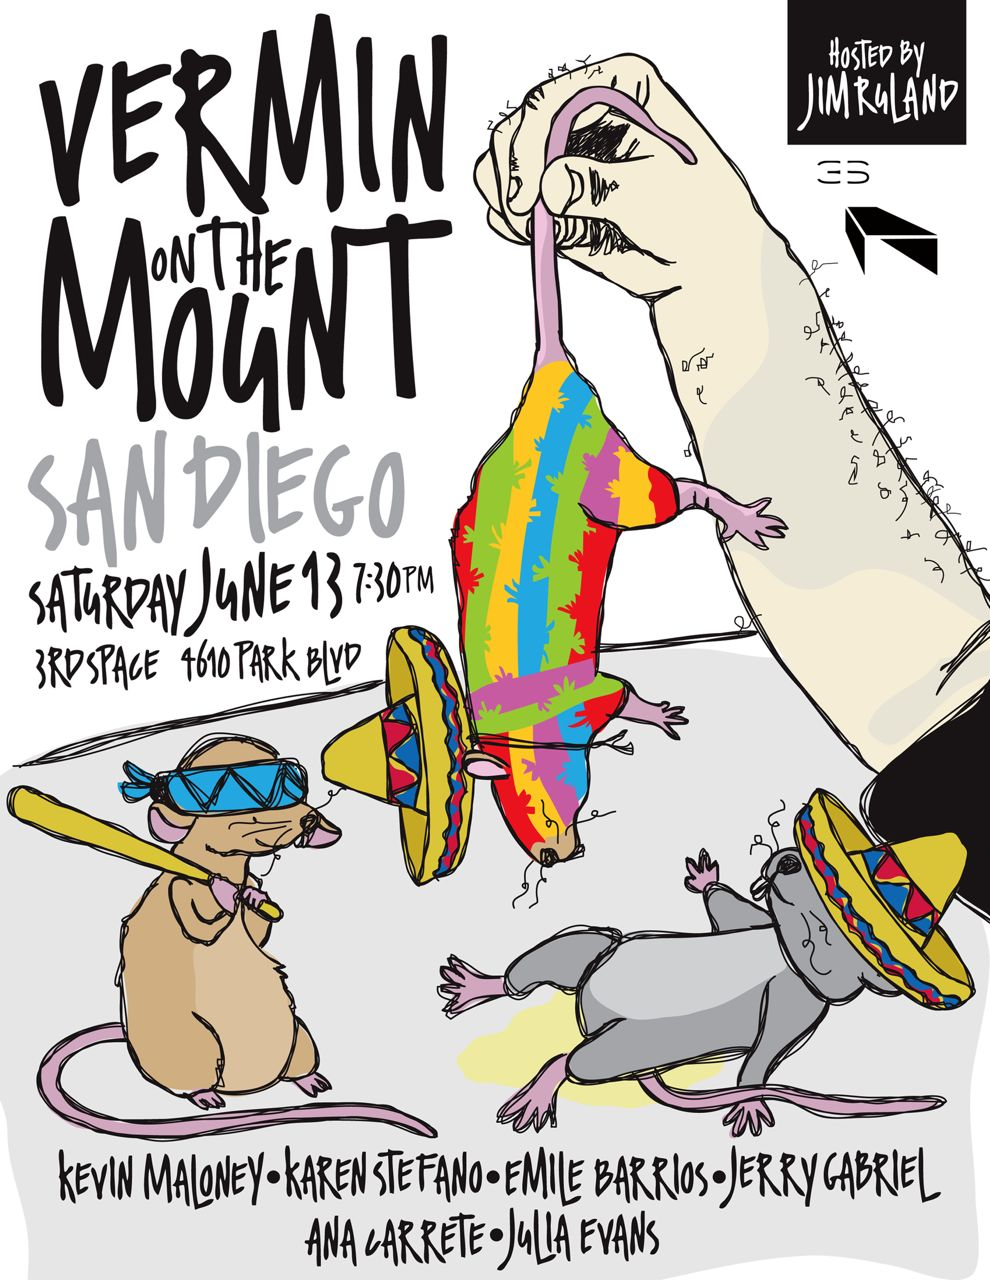 vermin on the mount